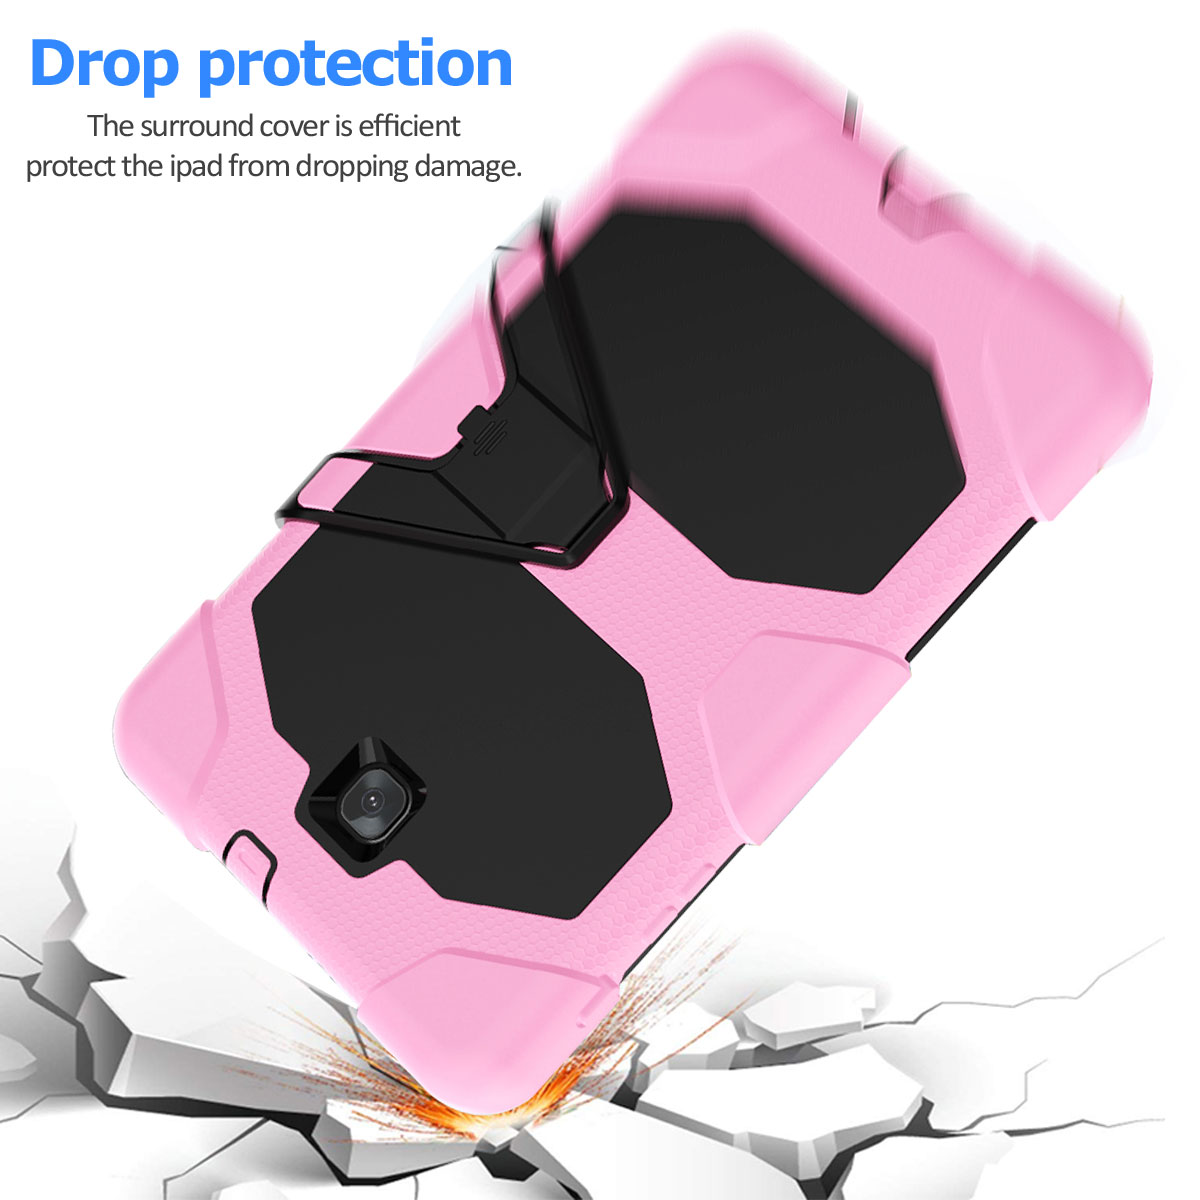 Rugged-Hard-Case-For-Samsung-Galaxy-Tab-A-8-0-2018-SM-T387-with-Screen-Protector thumbnail 54